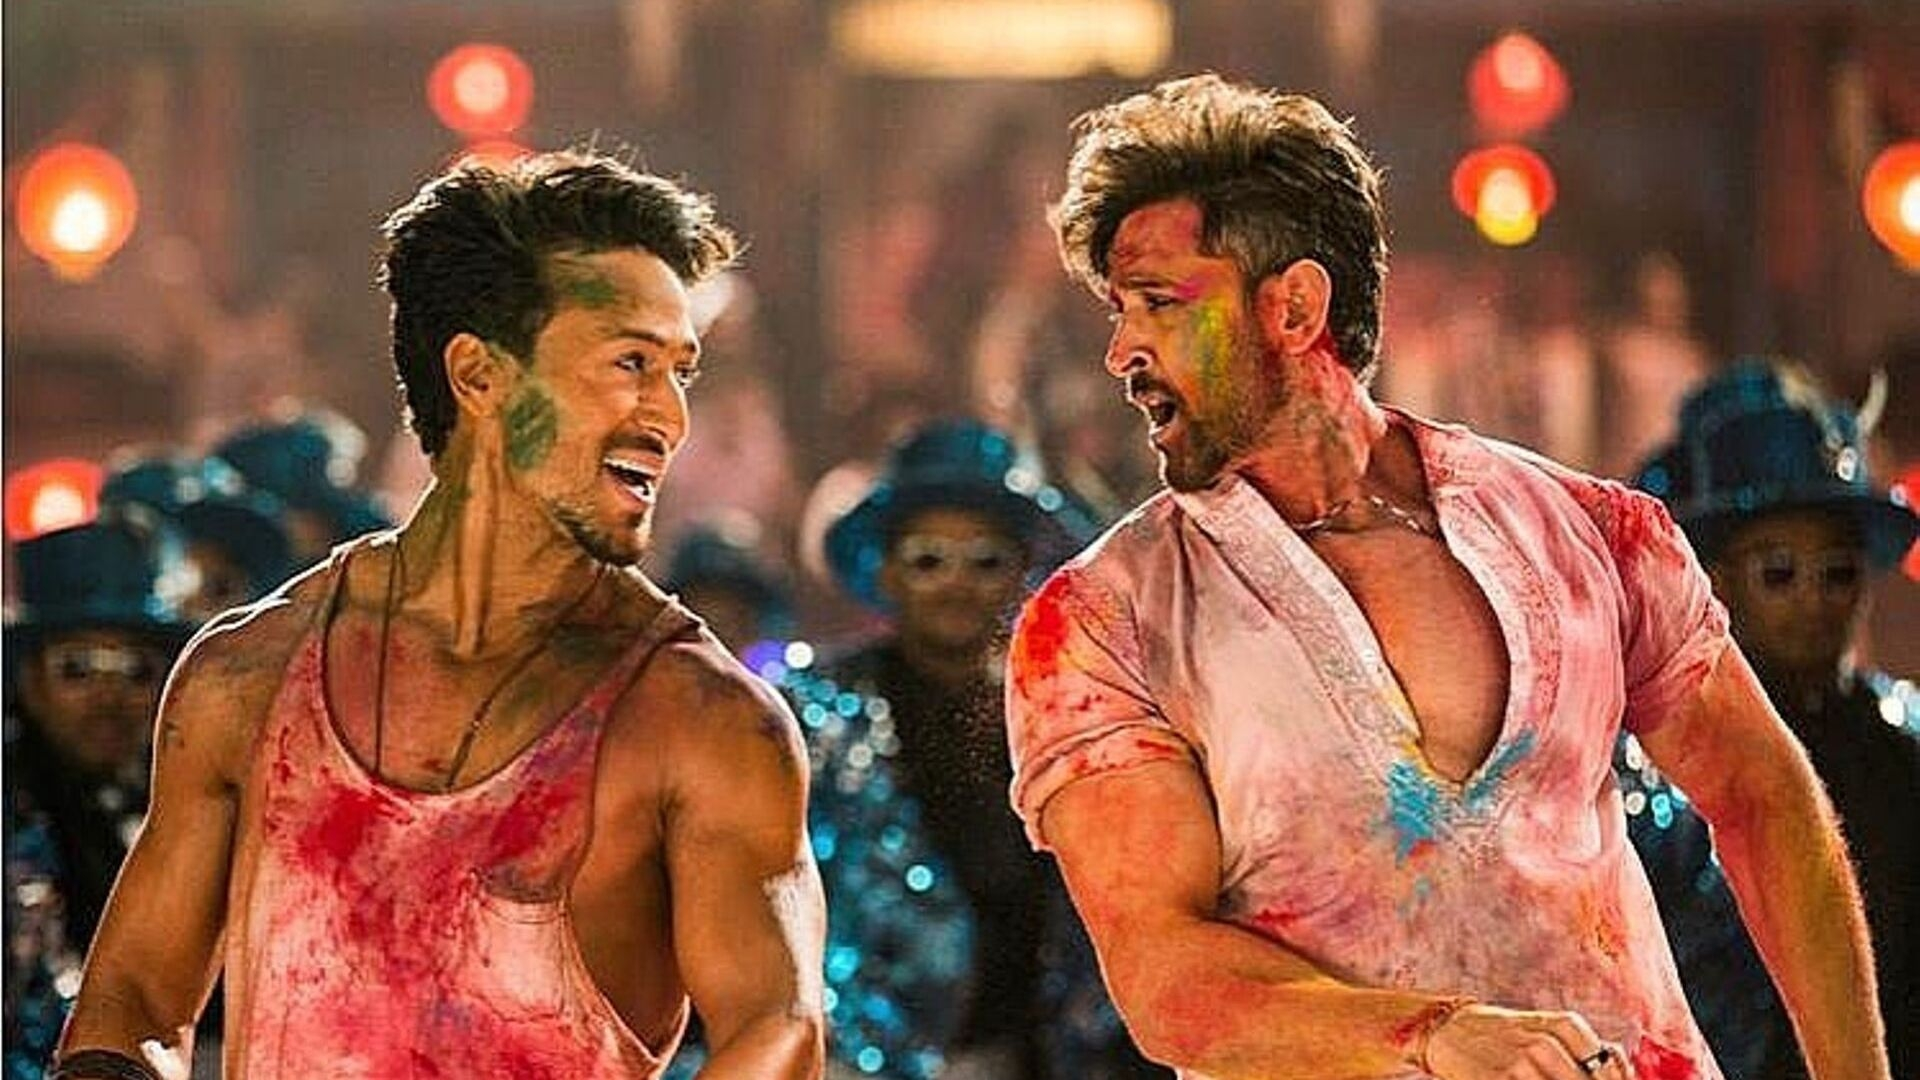 Hrithik and Tiger's Have a Colourful Dance-Off in New 'War' Song